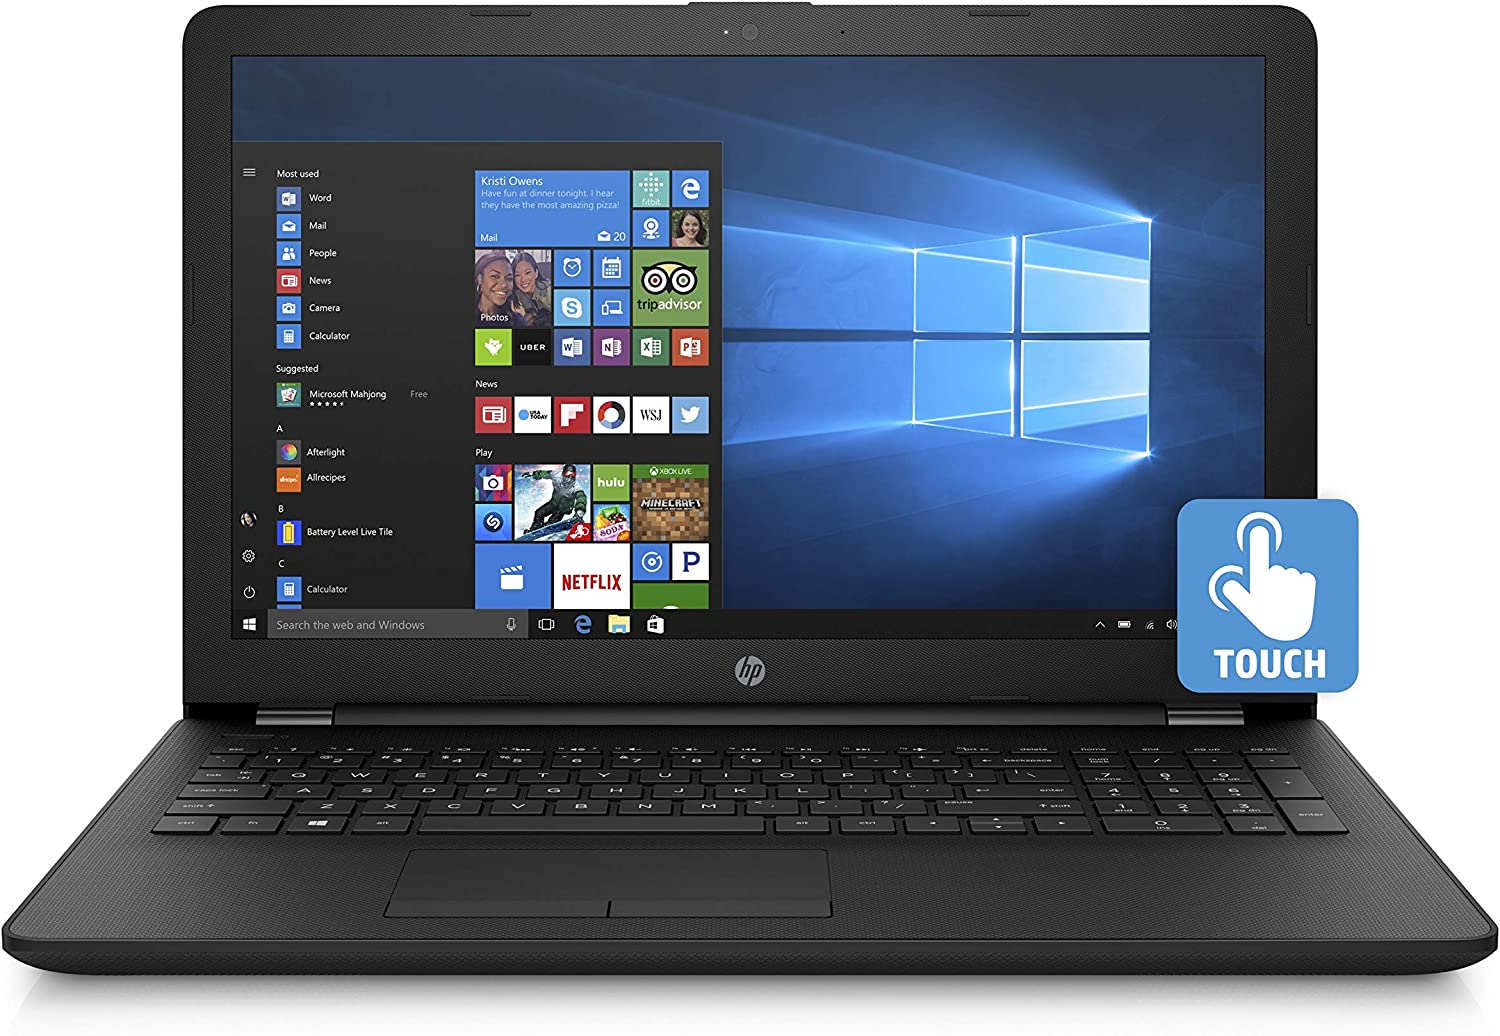 HP 2019 Premium Pavilion 15.6 Inch Touchscreen Laptop (Intel Pentium 4-Core N5000 1.10GHz, up to 2.70GHz Turbo, 8GB RAM, 512GB SSD, WiFi, Bluetooth, Windows 10)